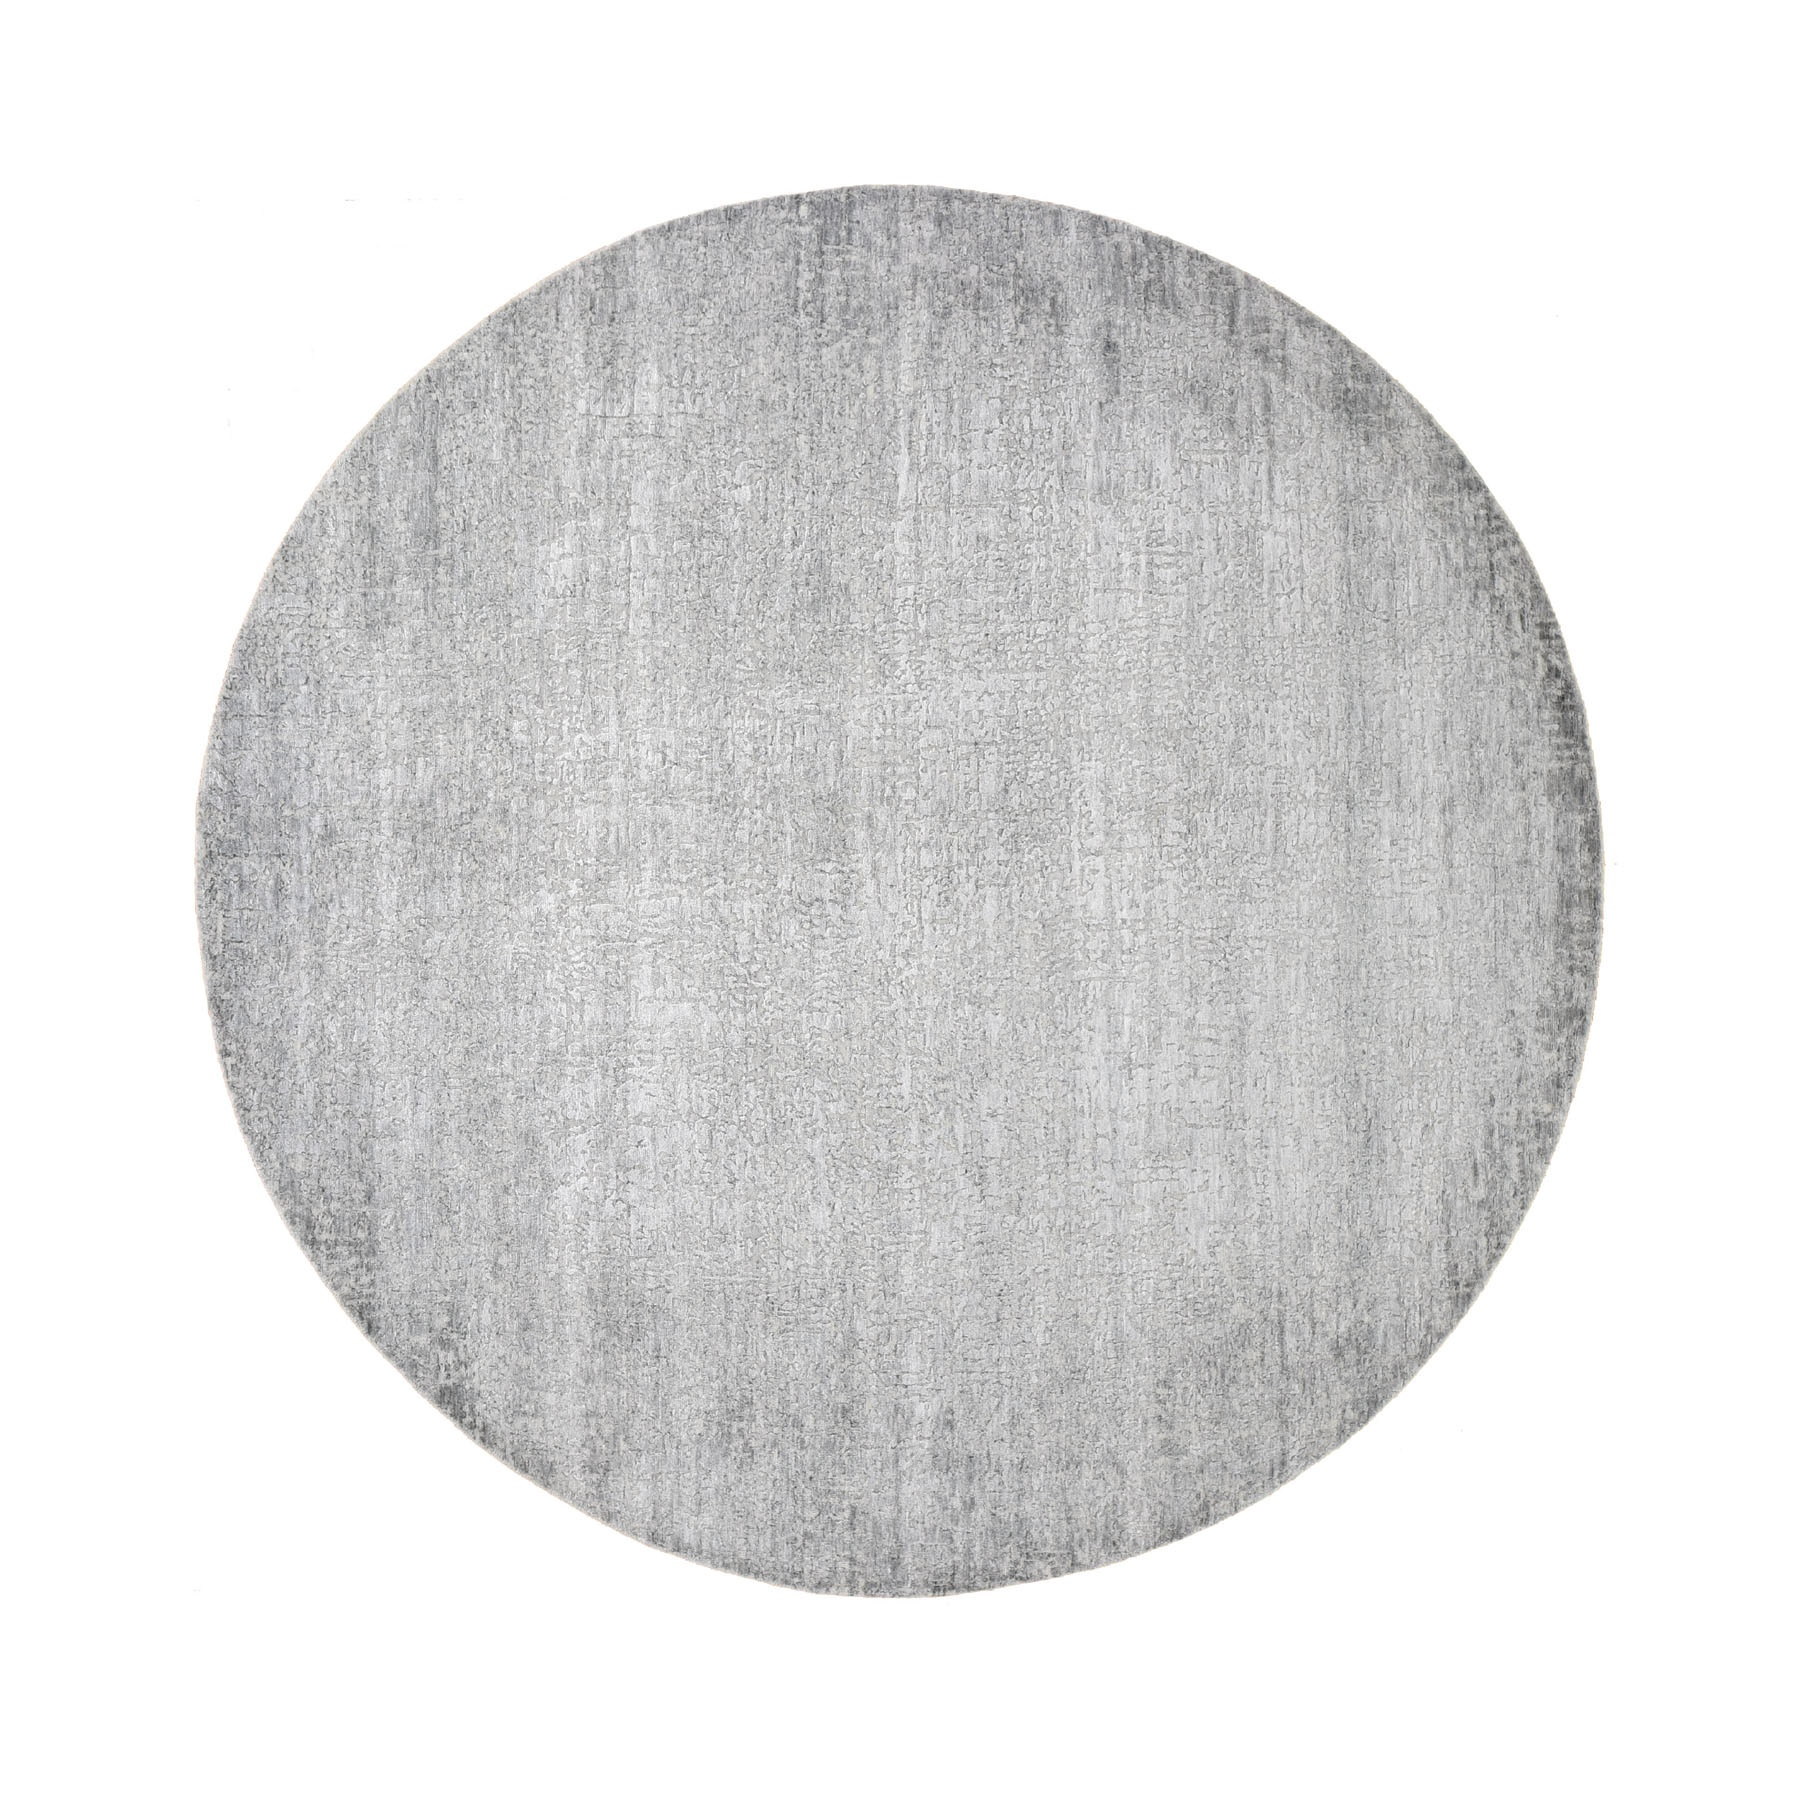 8'x8' Gray Round Tone On Tone Wool And Silk Hand Woven Oriental Rug